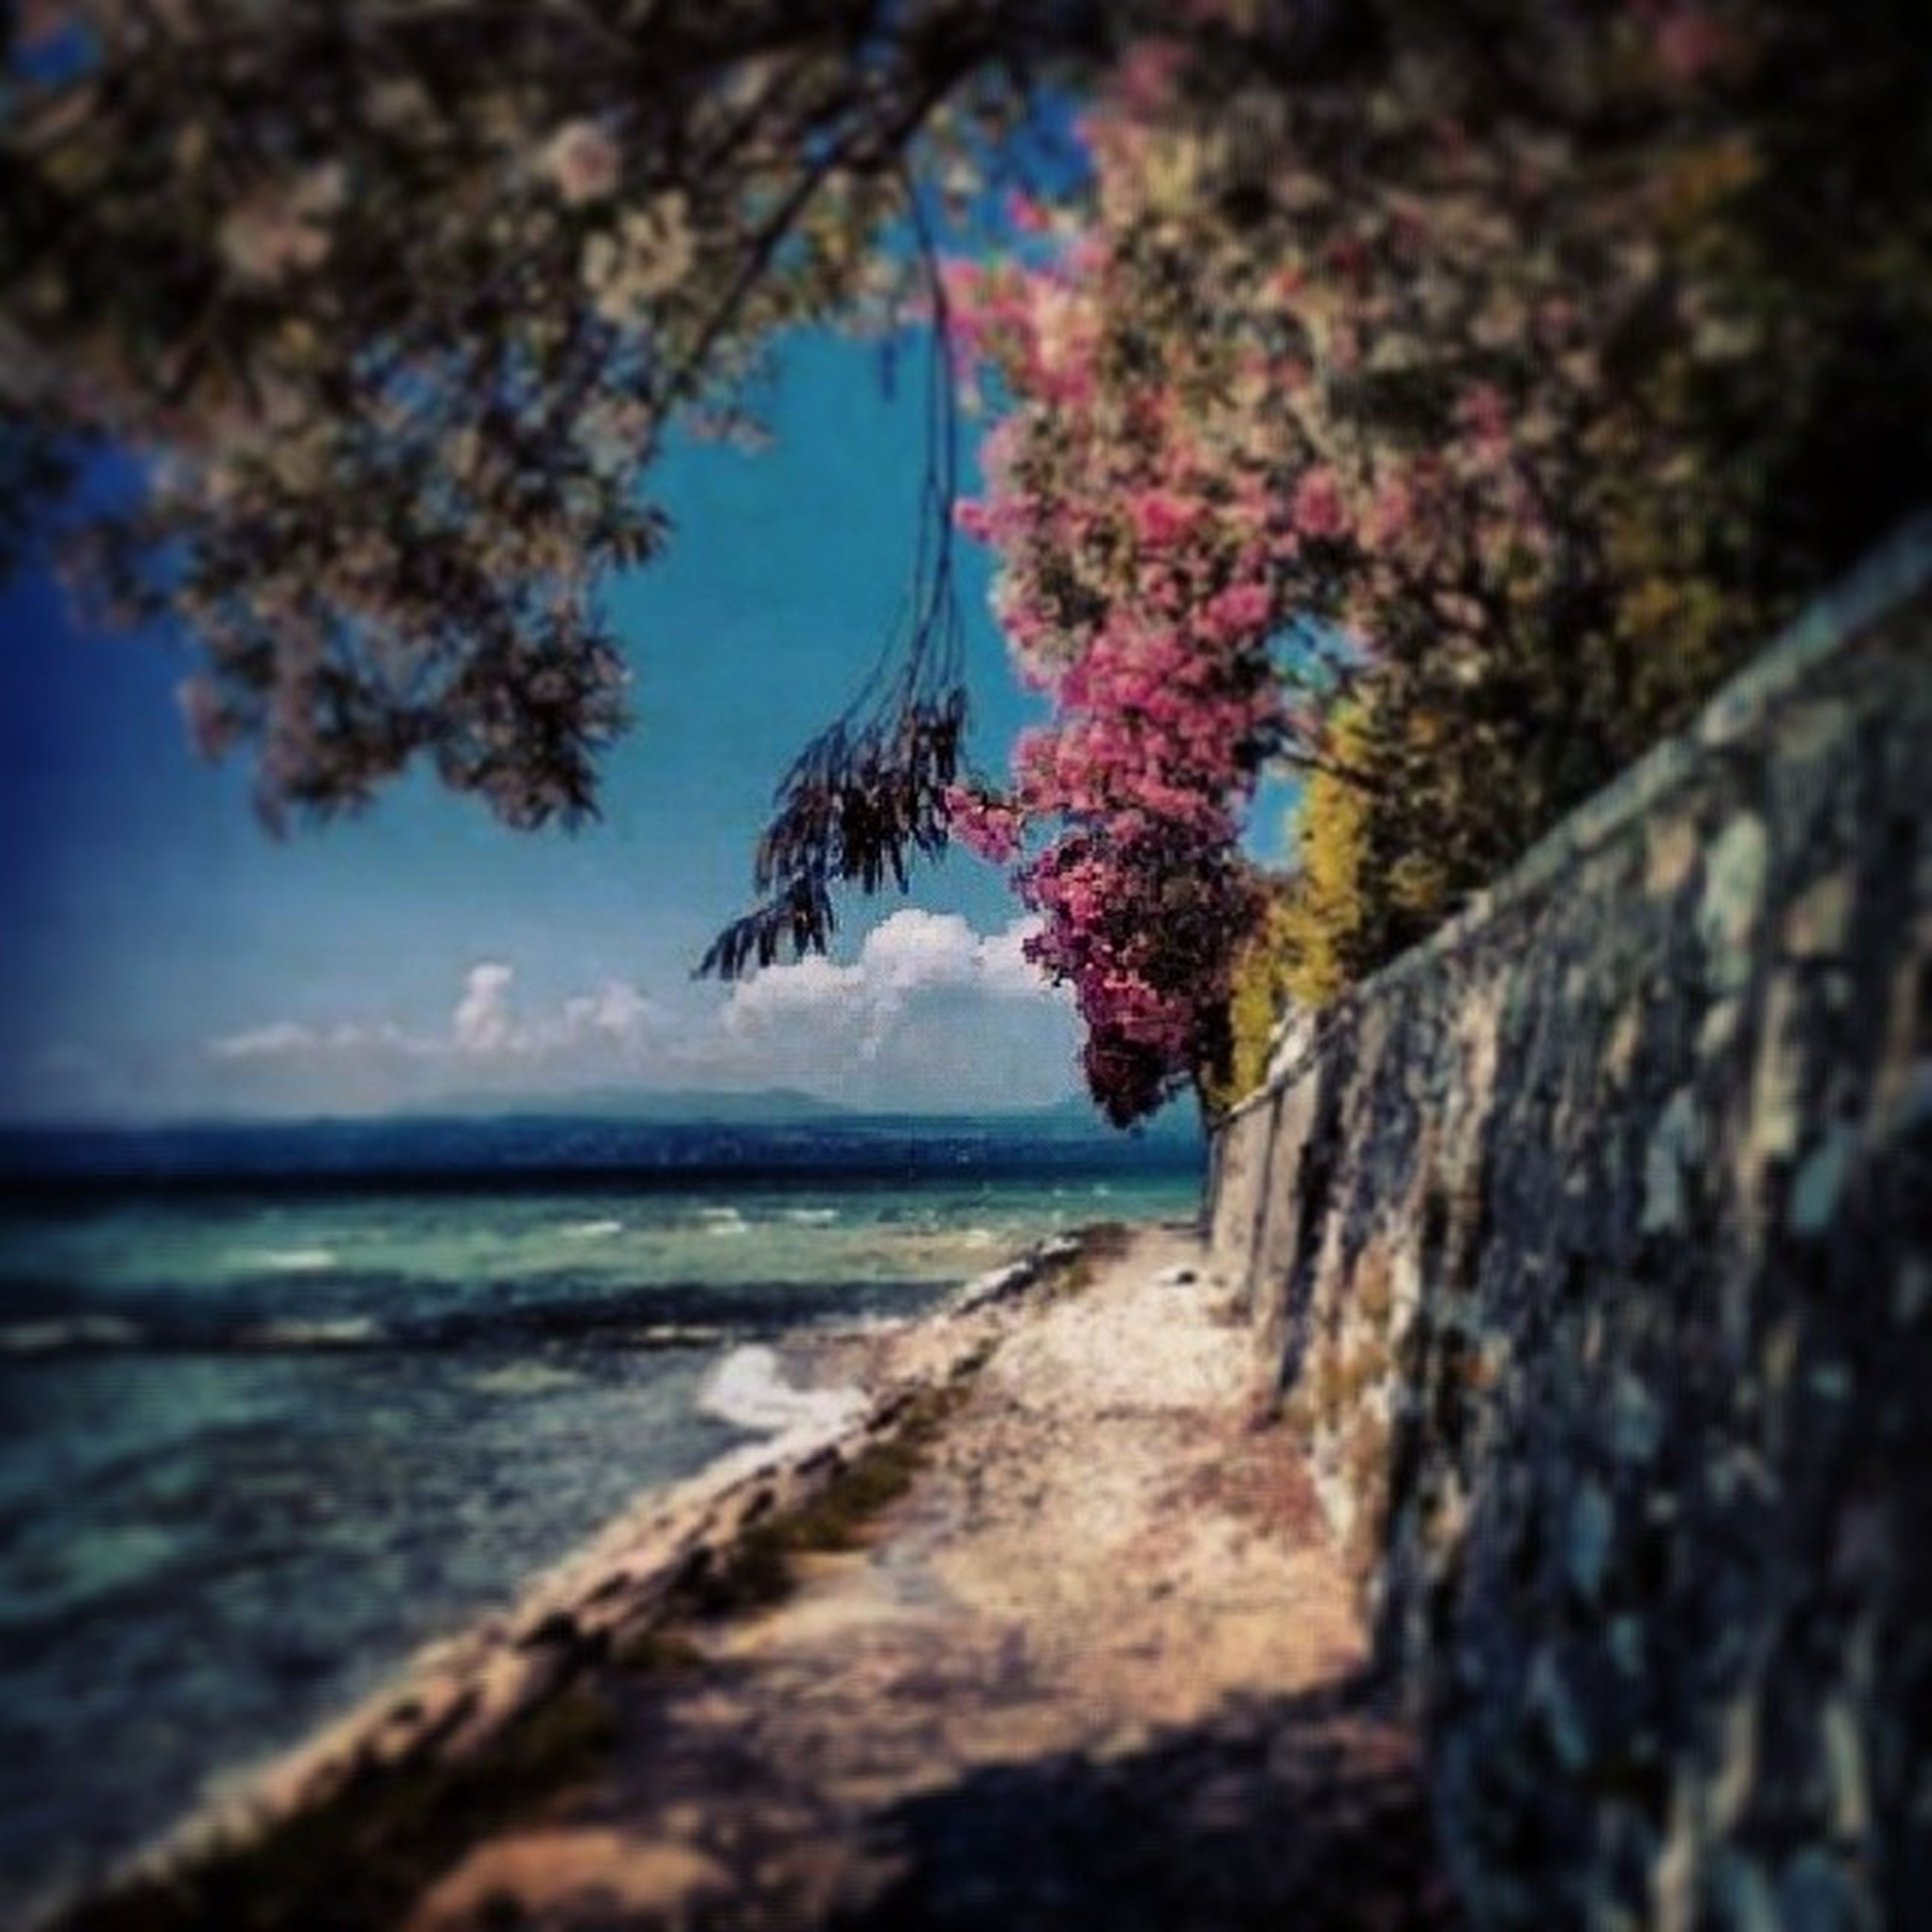 sea, water, tree, horizon over water, tranquility, beauty in nature, nature, tranquil scene, sky, scenics, beach, blue, branch, growth, outdoors, selective focus, day, no people, idyllic, shore